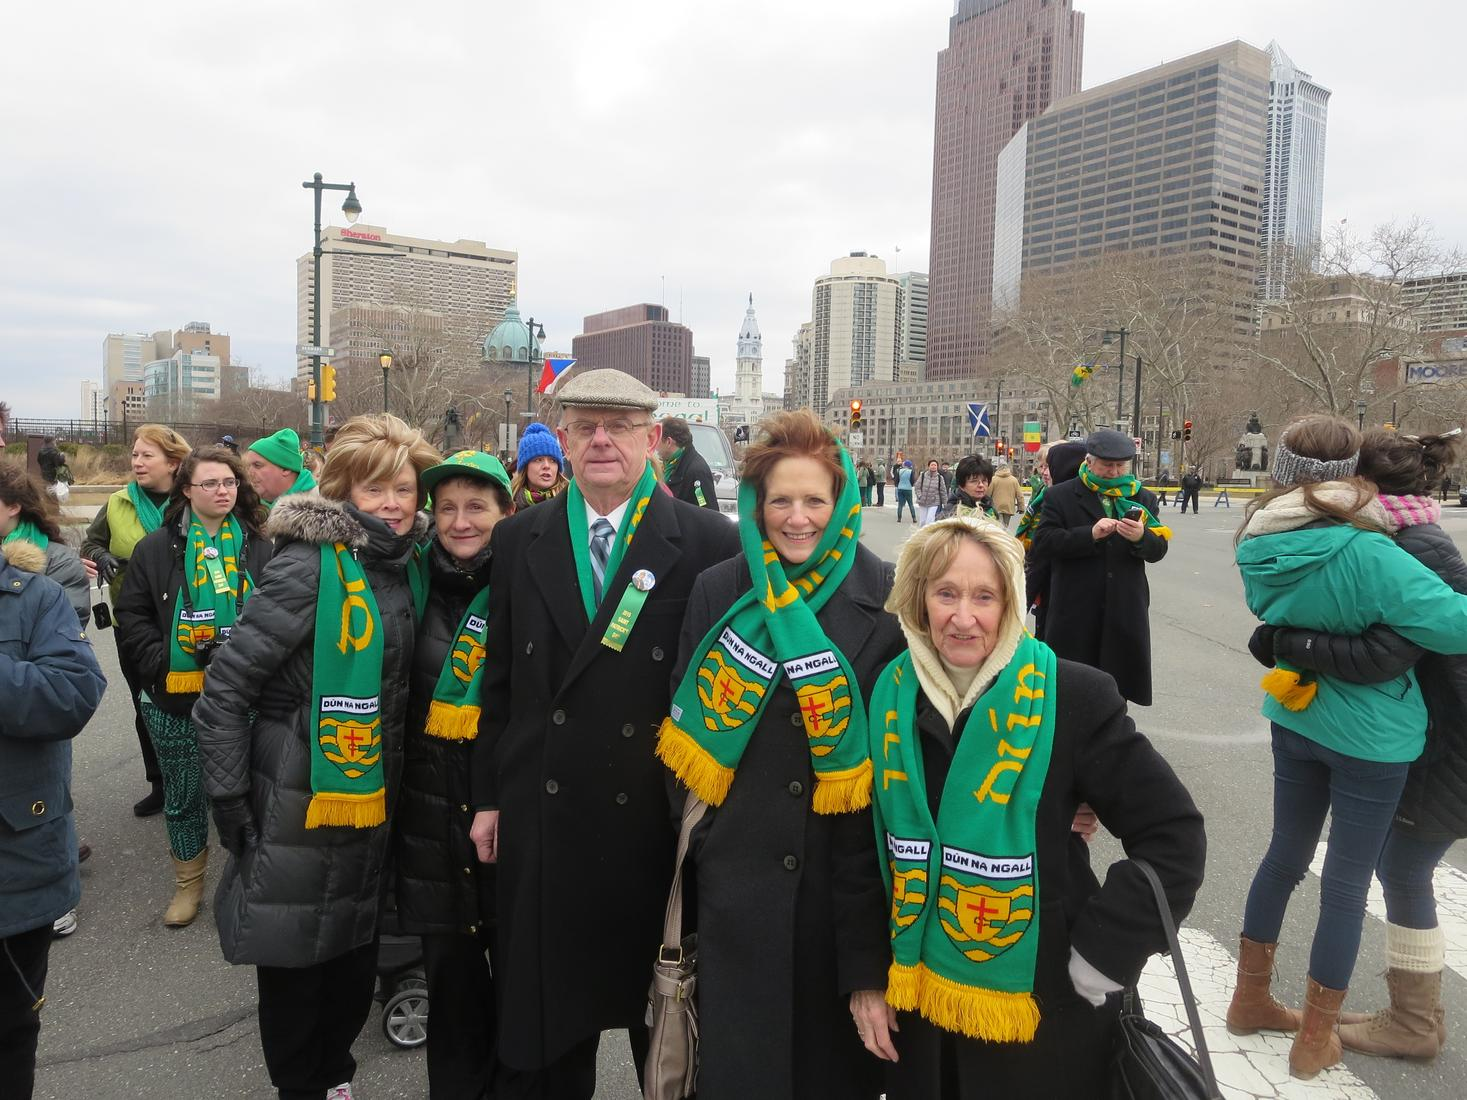 Philadelphia Saint Patrick's Day Parade – The Donegal Association of Philadel